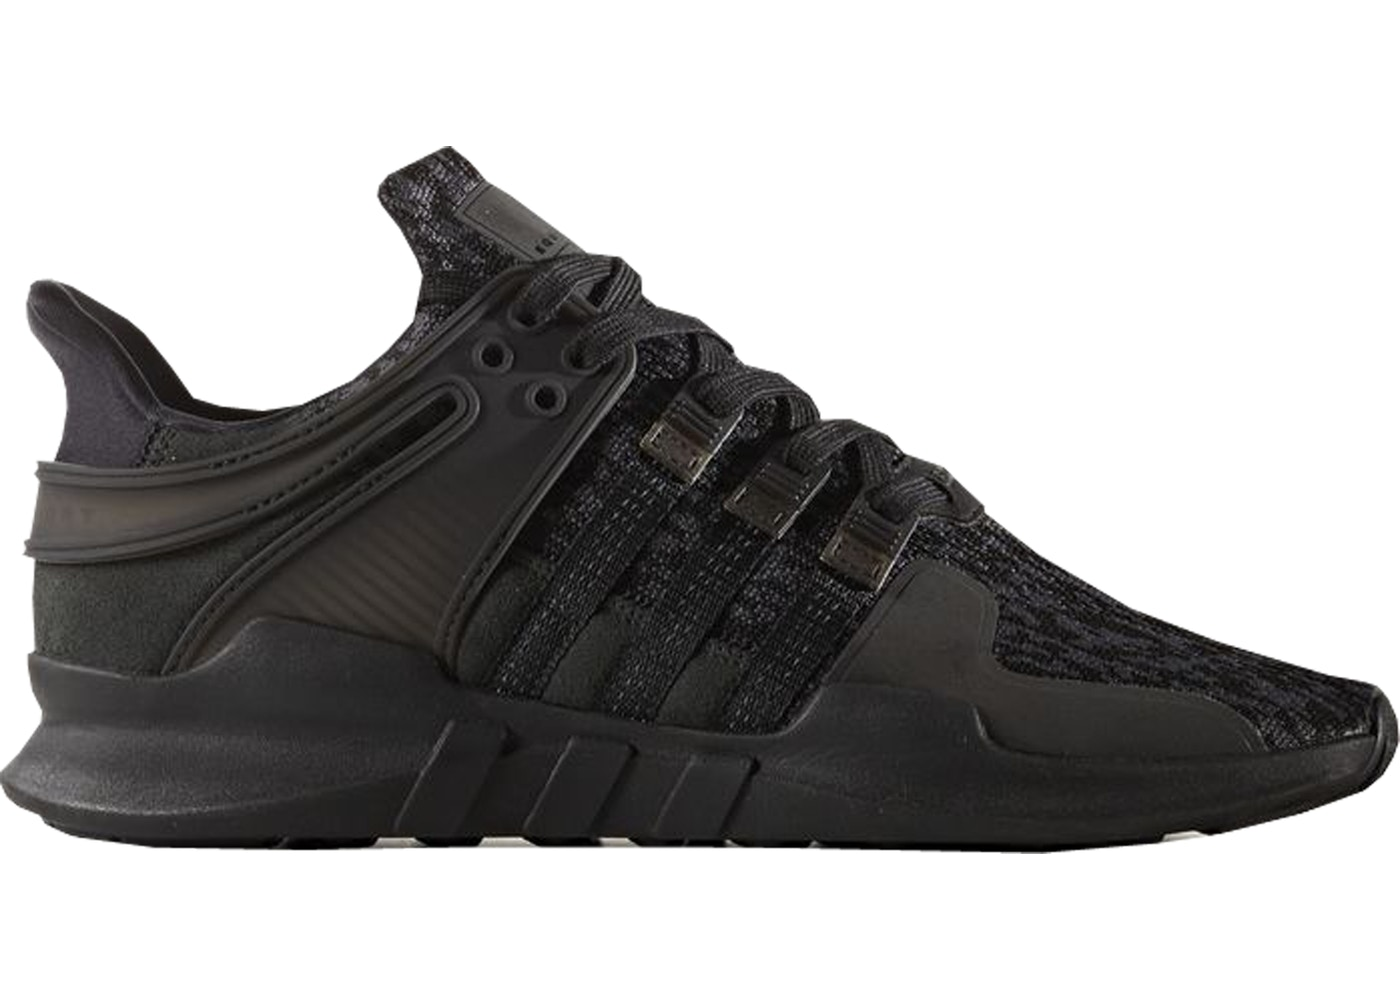 ca7e1f5a8083f adidas EQT Support ADV Core Black Sub Green - BY9589